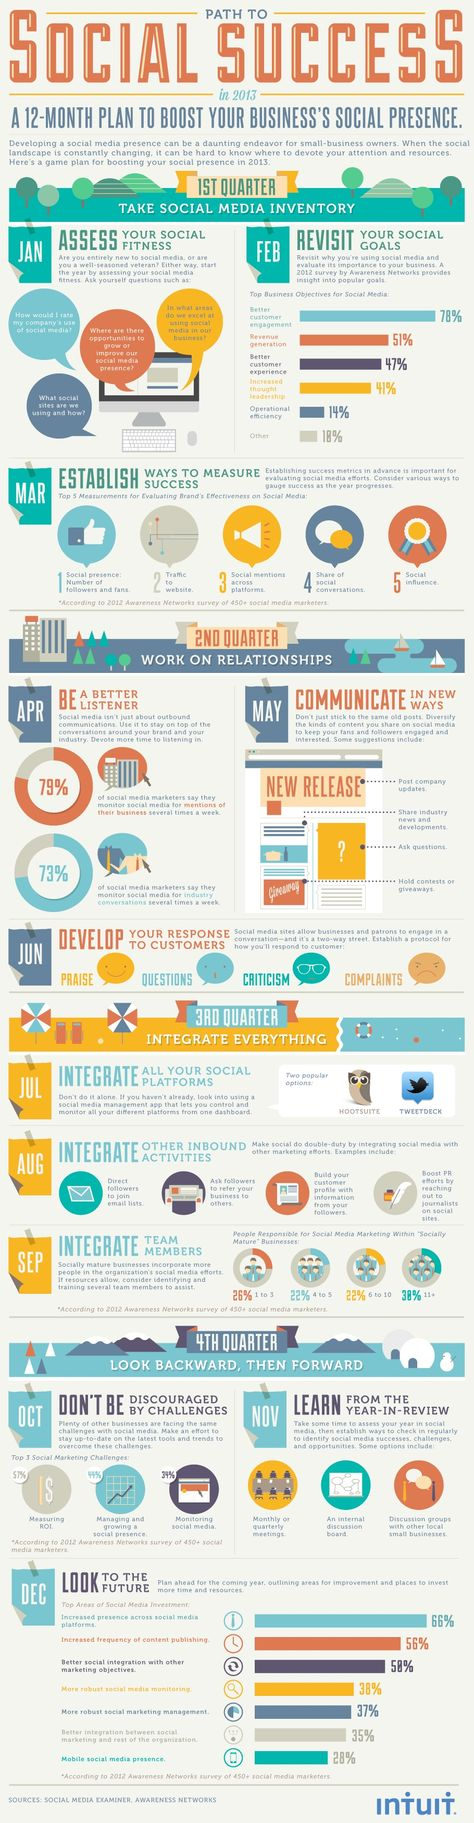 The Path to Social Media Success in 2013: A 12-Month Plan [Infographic]